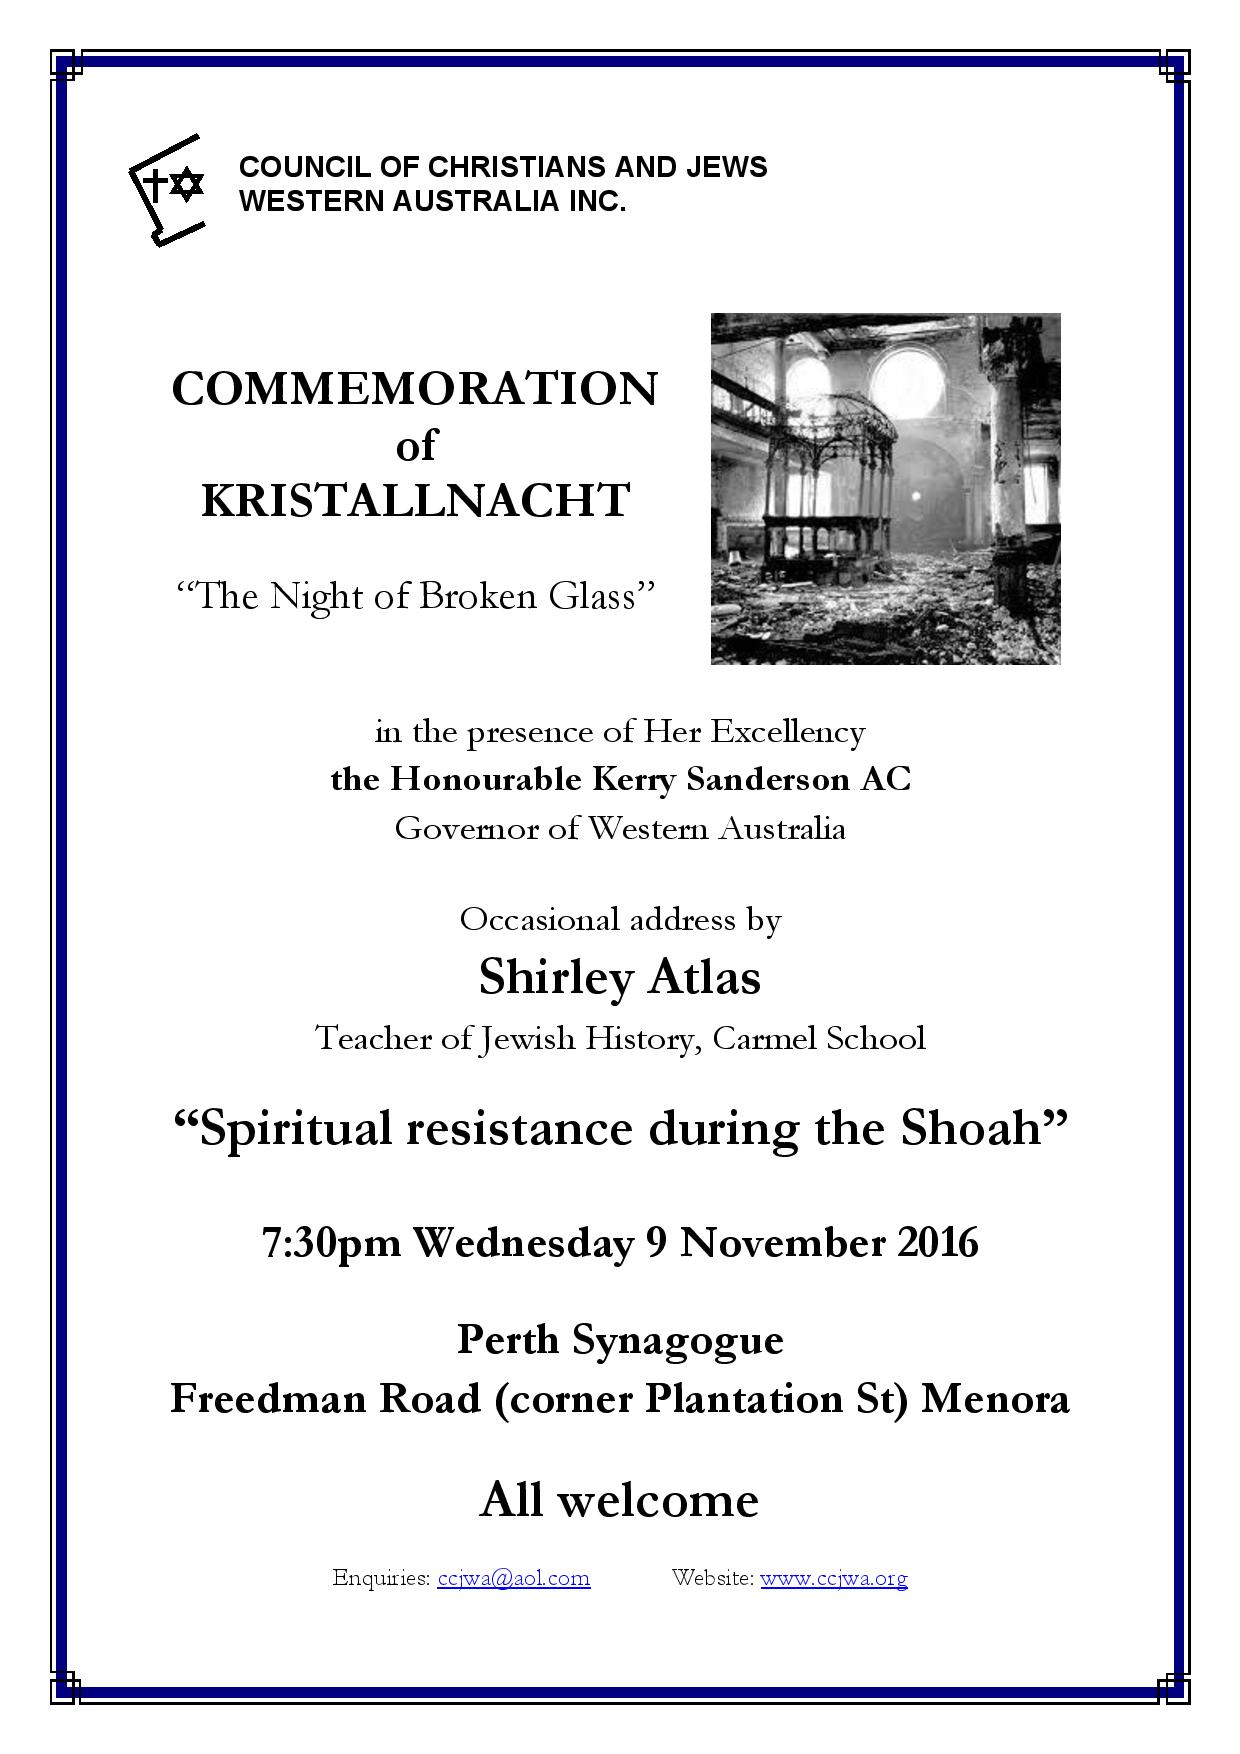 Kristallnacht_2016_flyer_for_members-page-001.jpg